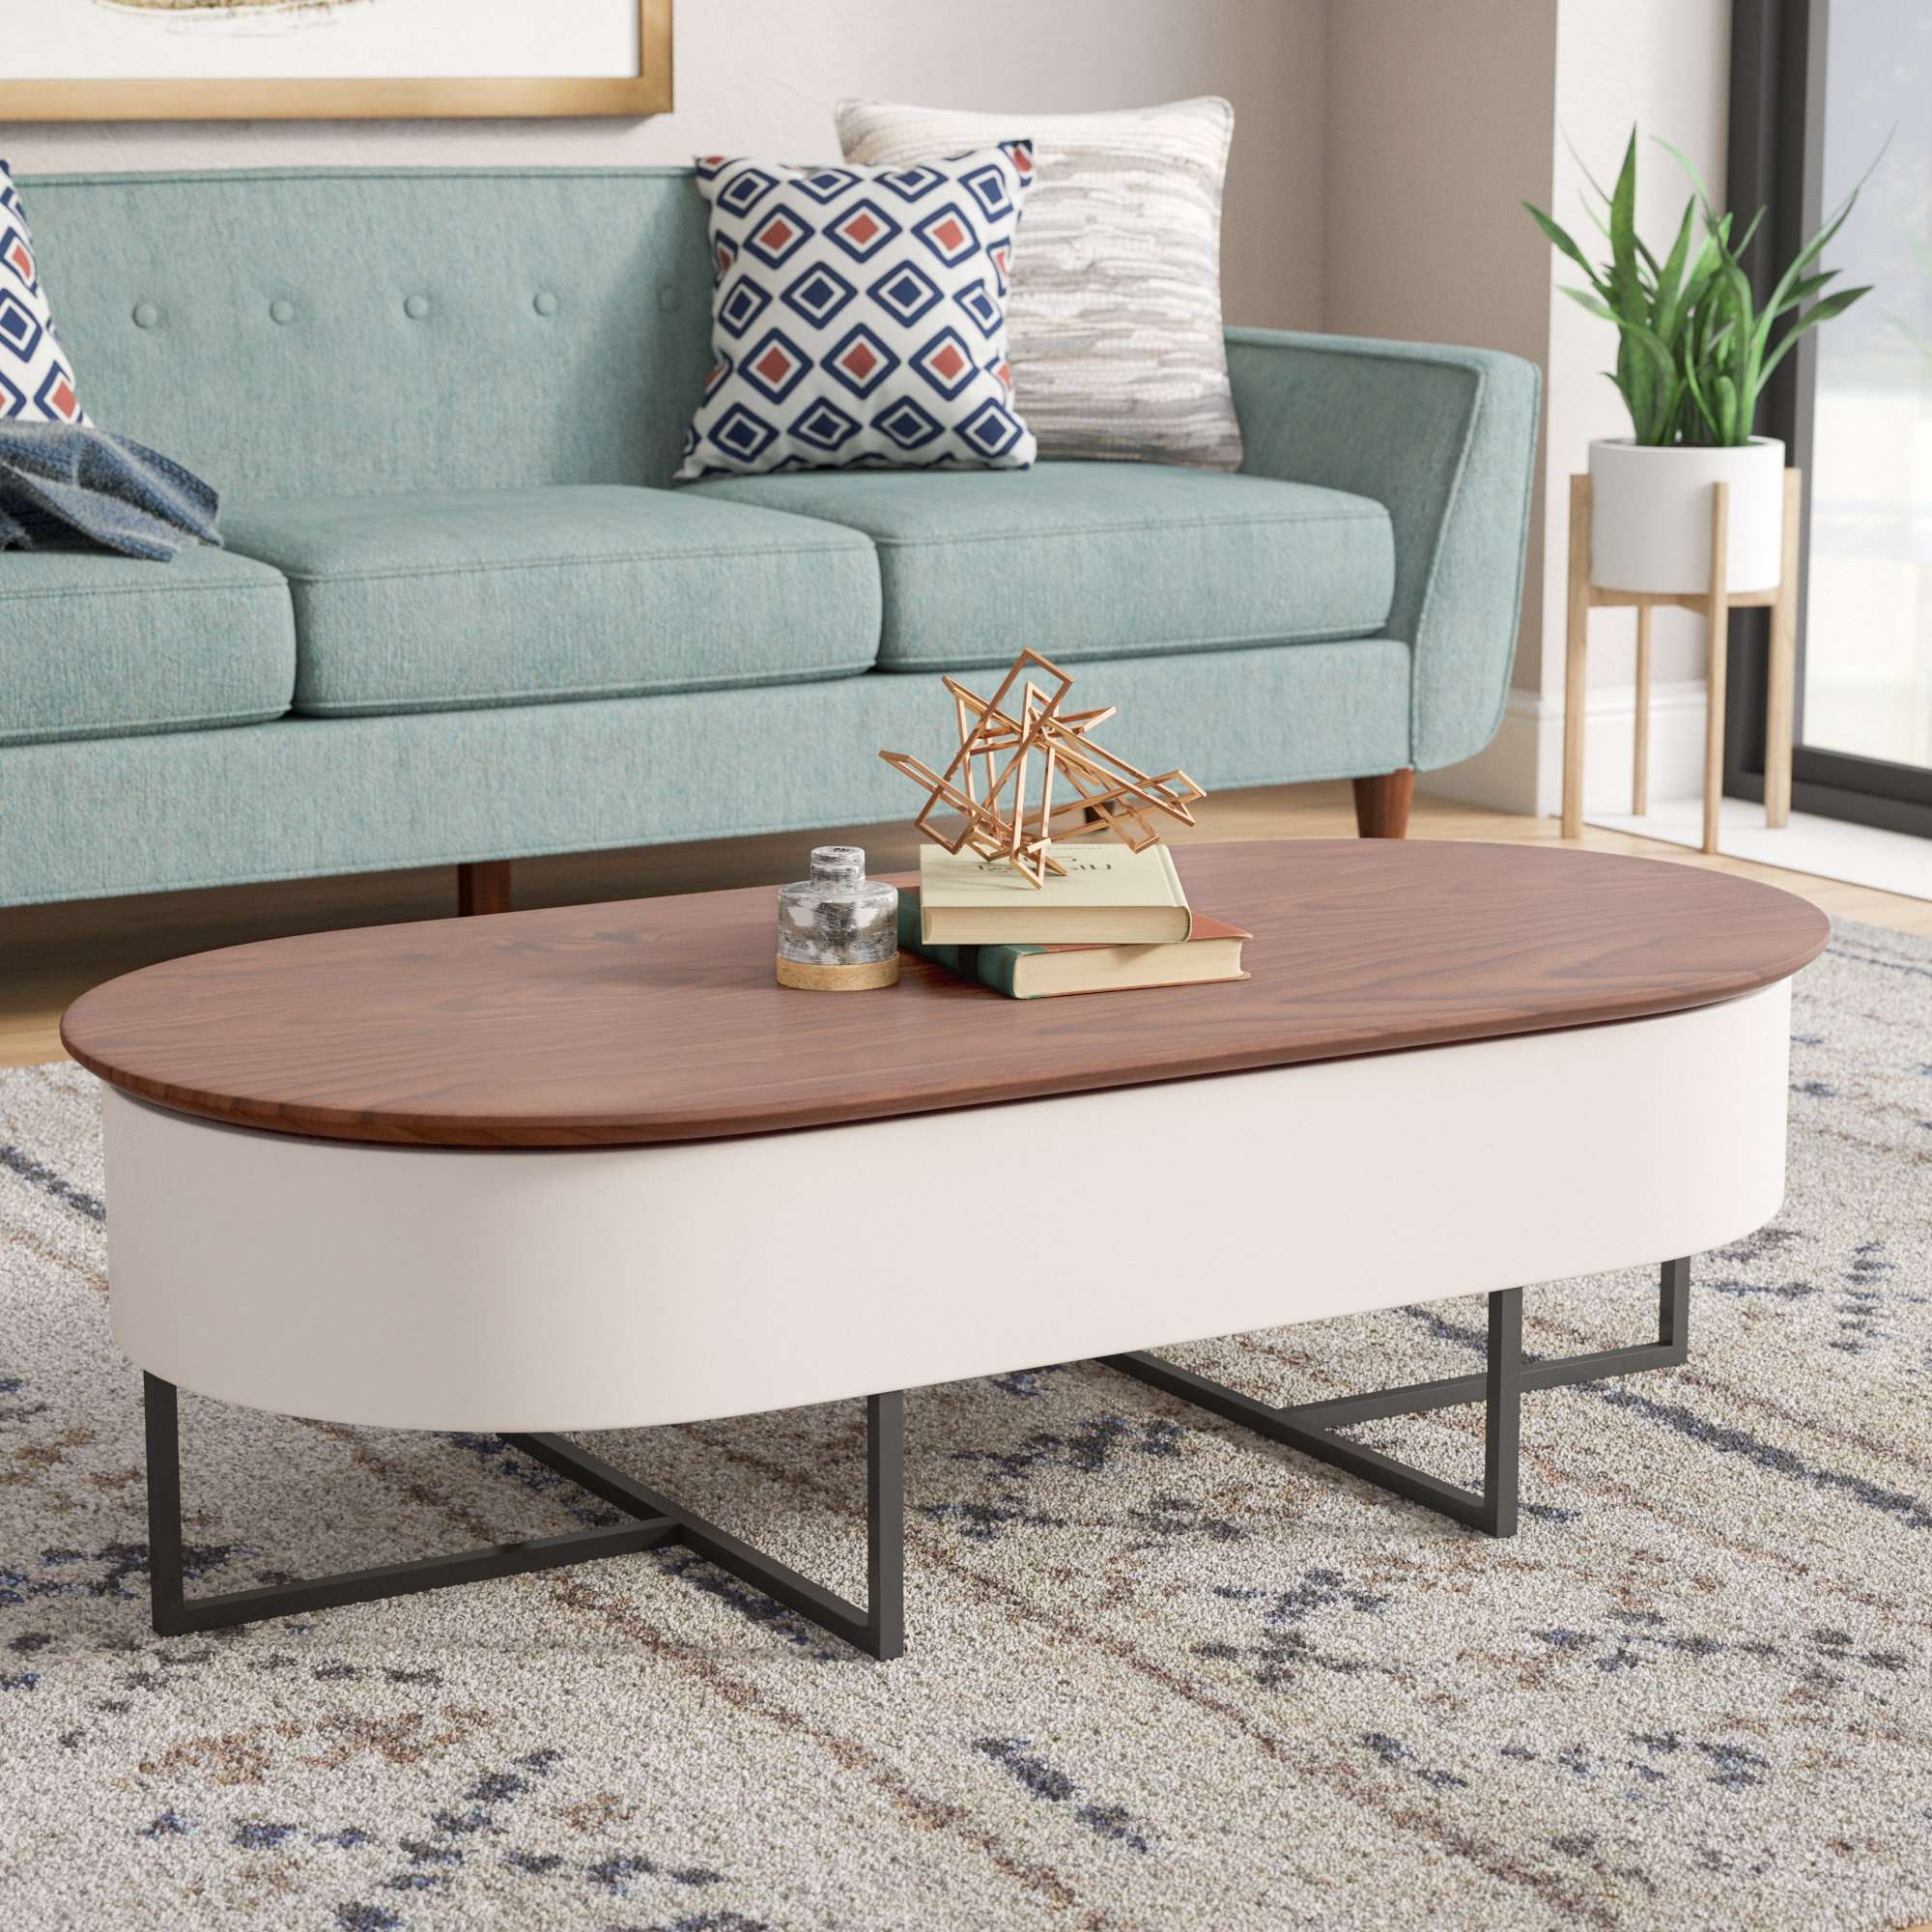 Rousing Lift Up Coffee Tables Throughout Lift Coffee Tables 2018 Lift Up Coffee Tables Lift Up Coffee Table Walmart Lift Up Coffee Table Mechanism Uk houzz 01 Lift Up Coffee Table